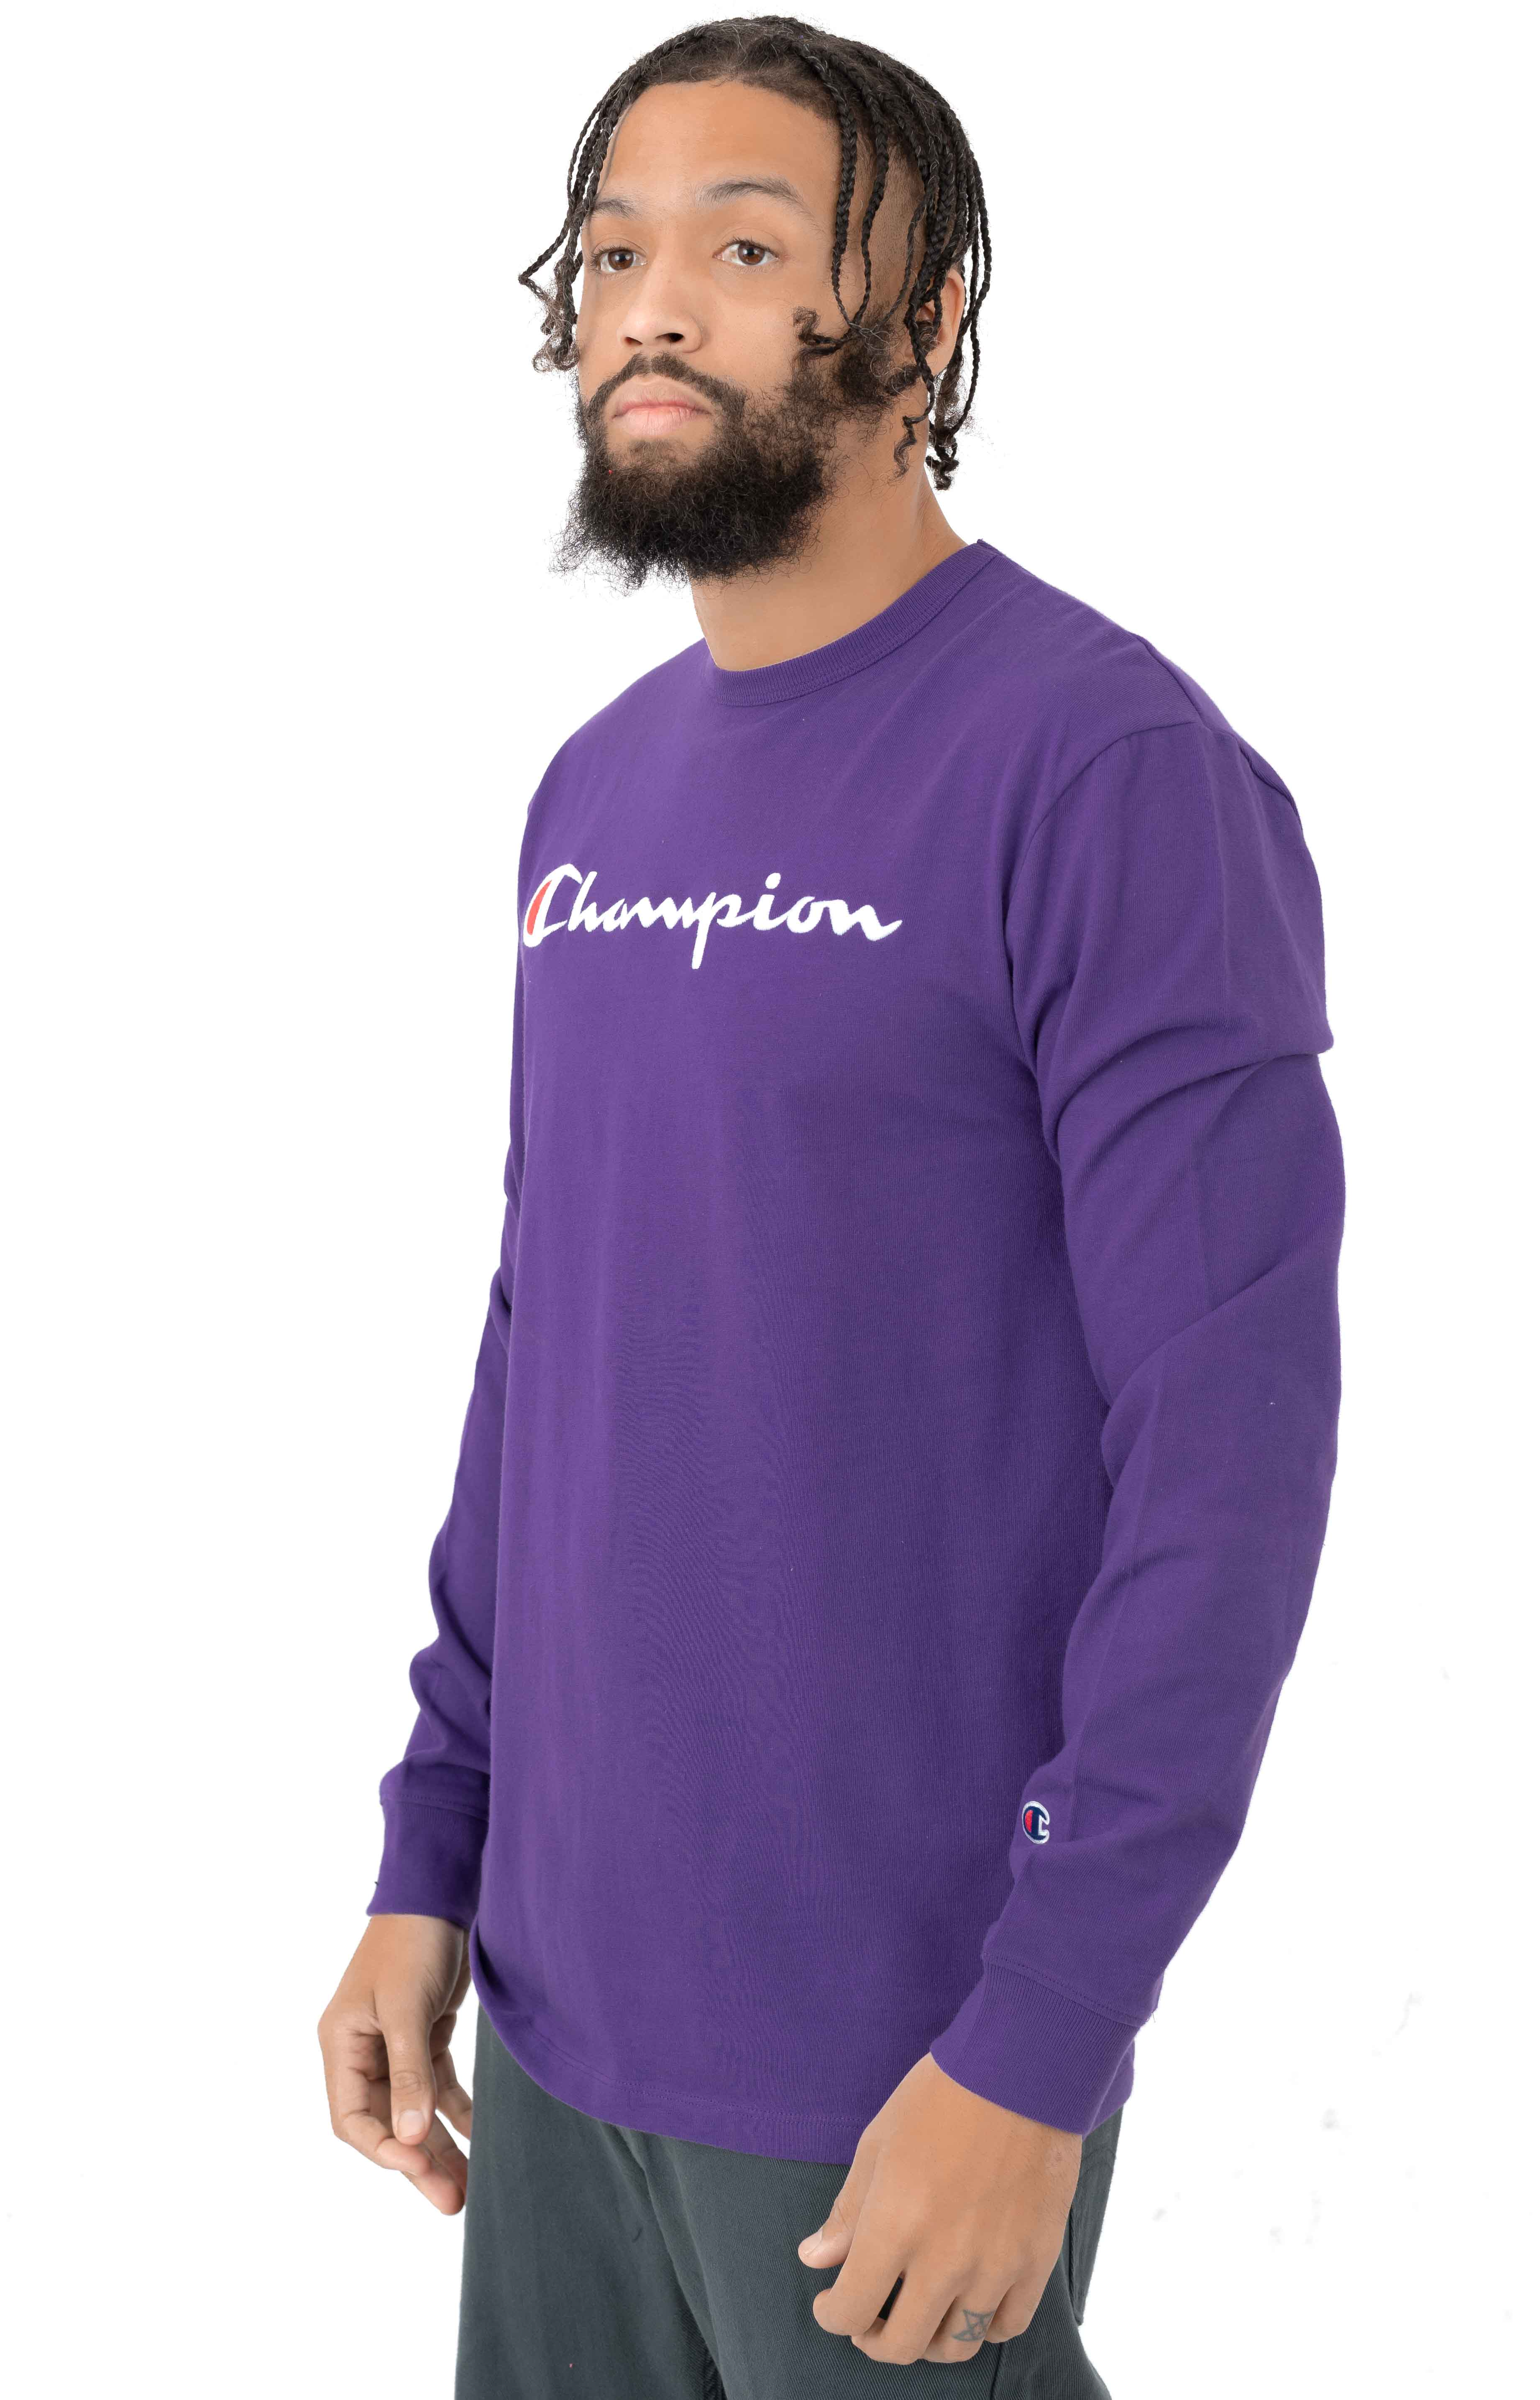 Heritage Script Embroidered L/S Shirt - Purple  2